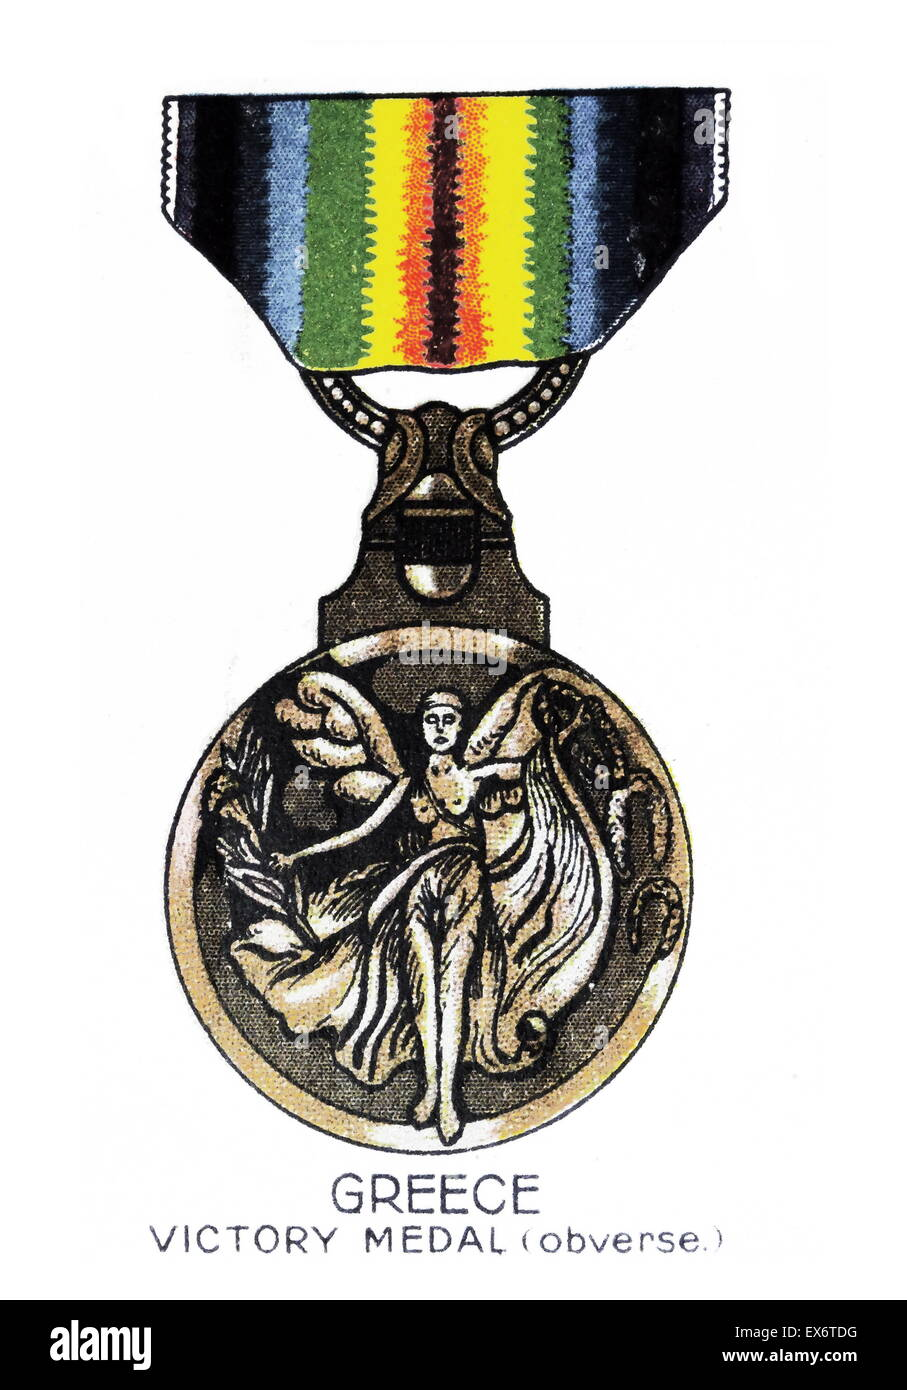 The Inter-Allied Victory Medal (obverse) is a campaign medal issued by Greece, commemorating the Allied victory - Stock Image